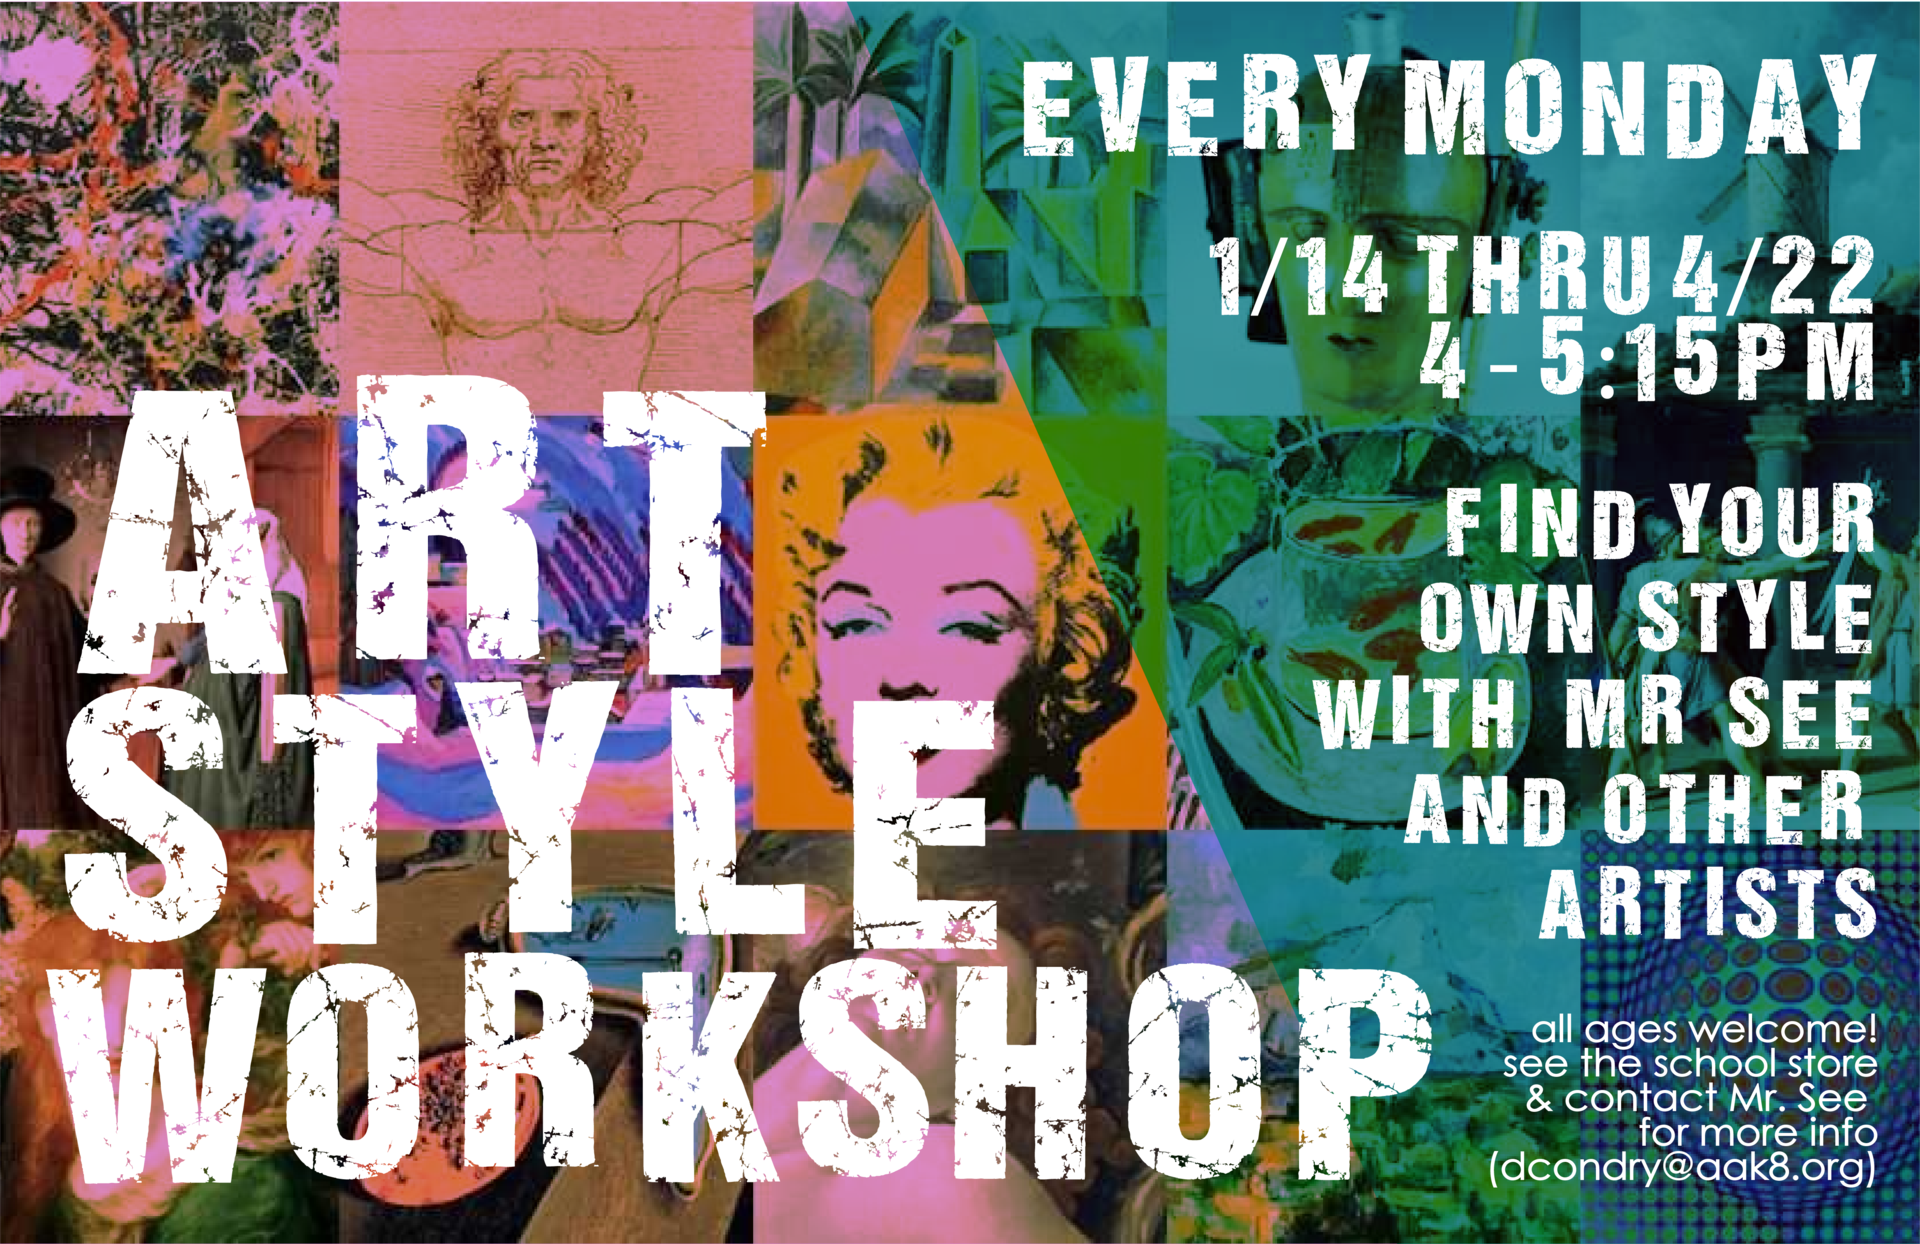 A flier showing diverse art styles advertising Mr. See's new art-style-workshop after school club.  Every Monday, 1/14 through 4/22, 4-5:15pm.  All ages welcome.  More info on school store.